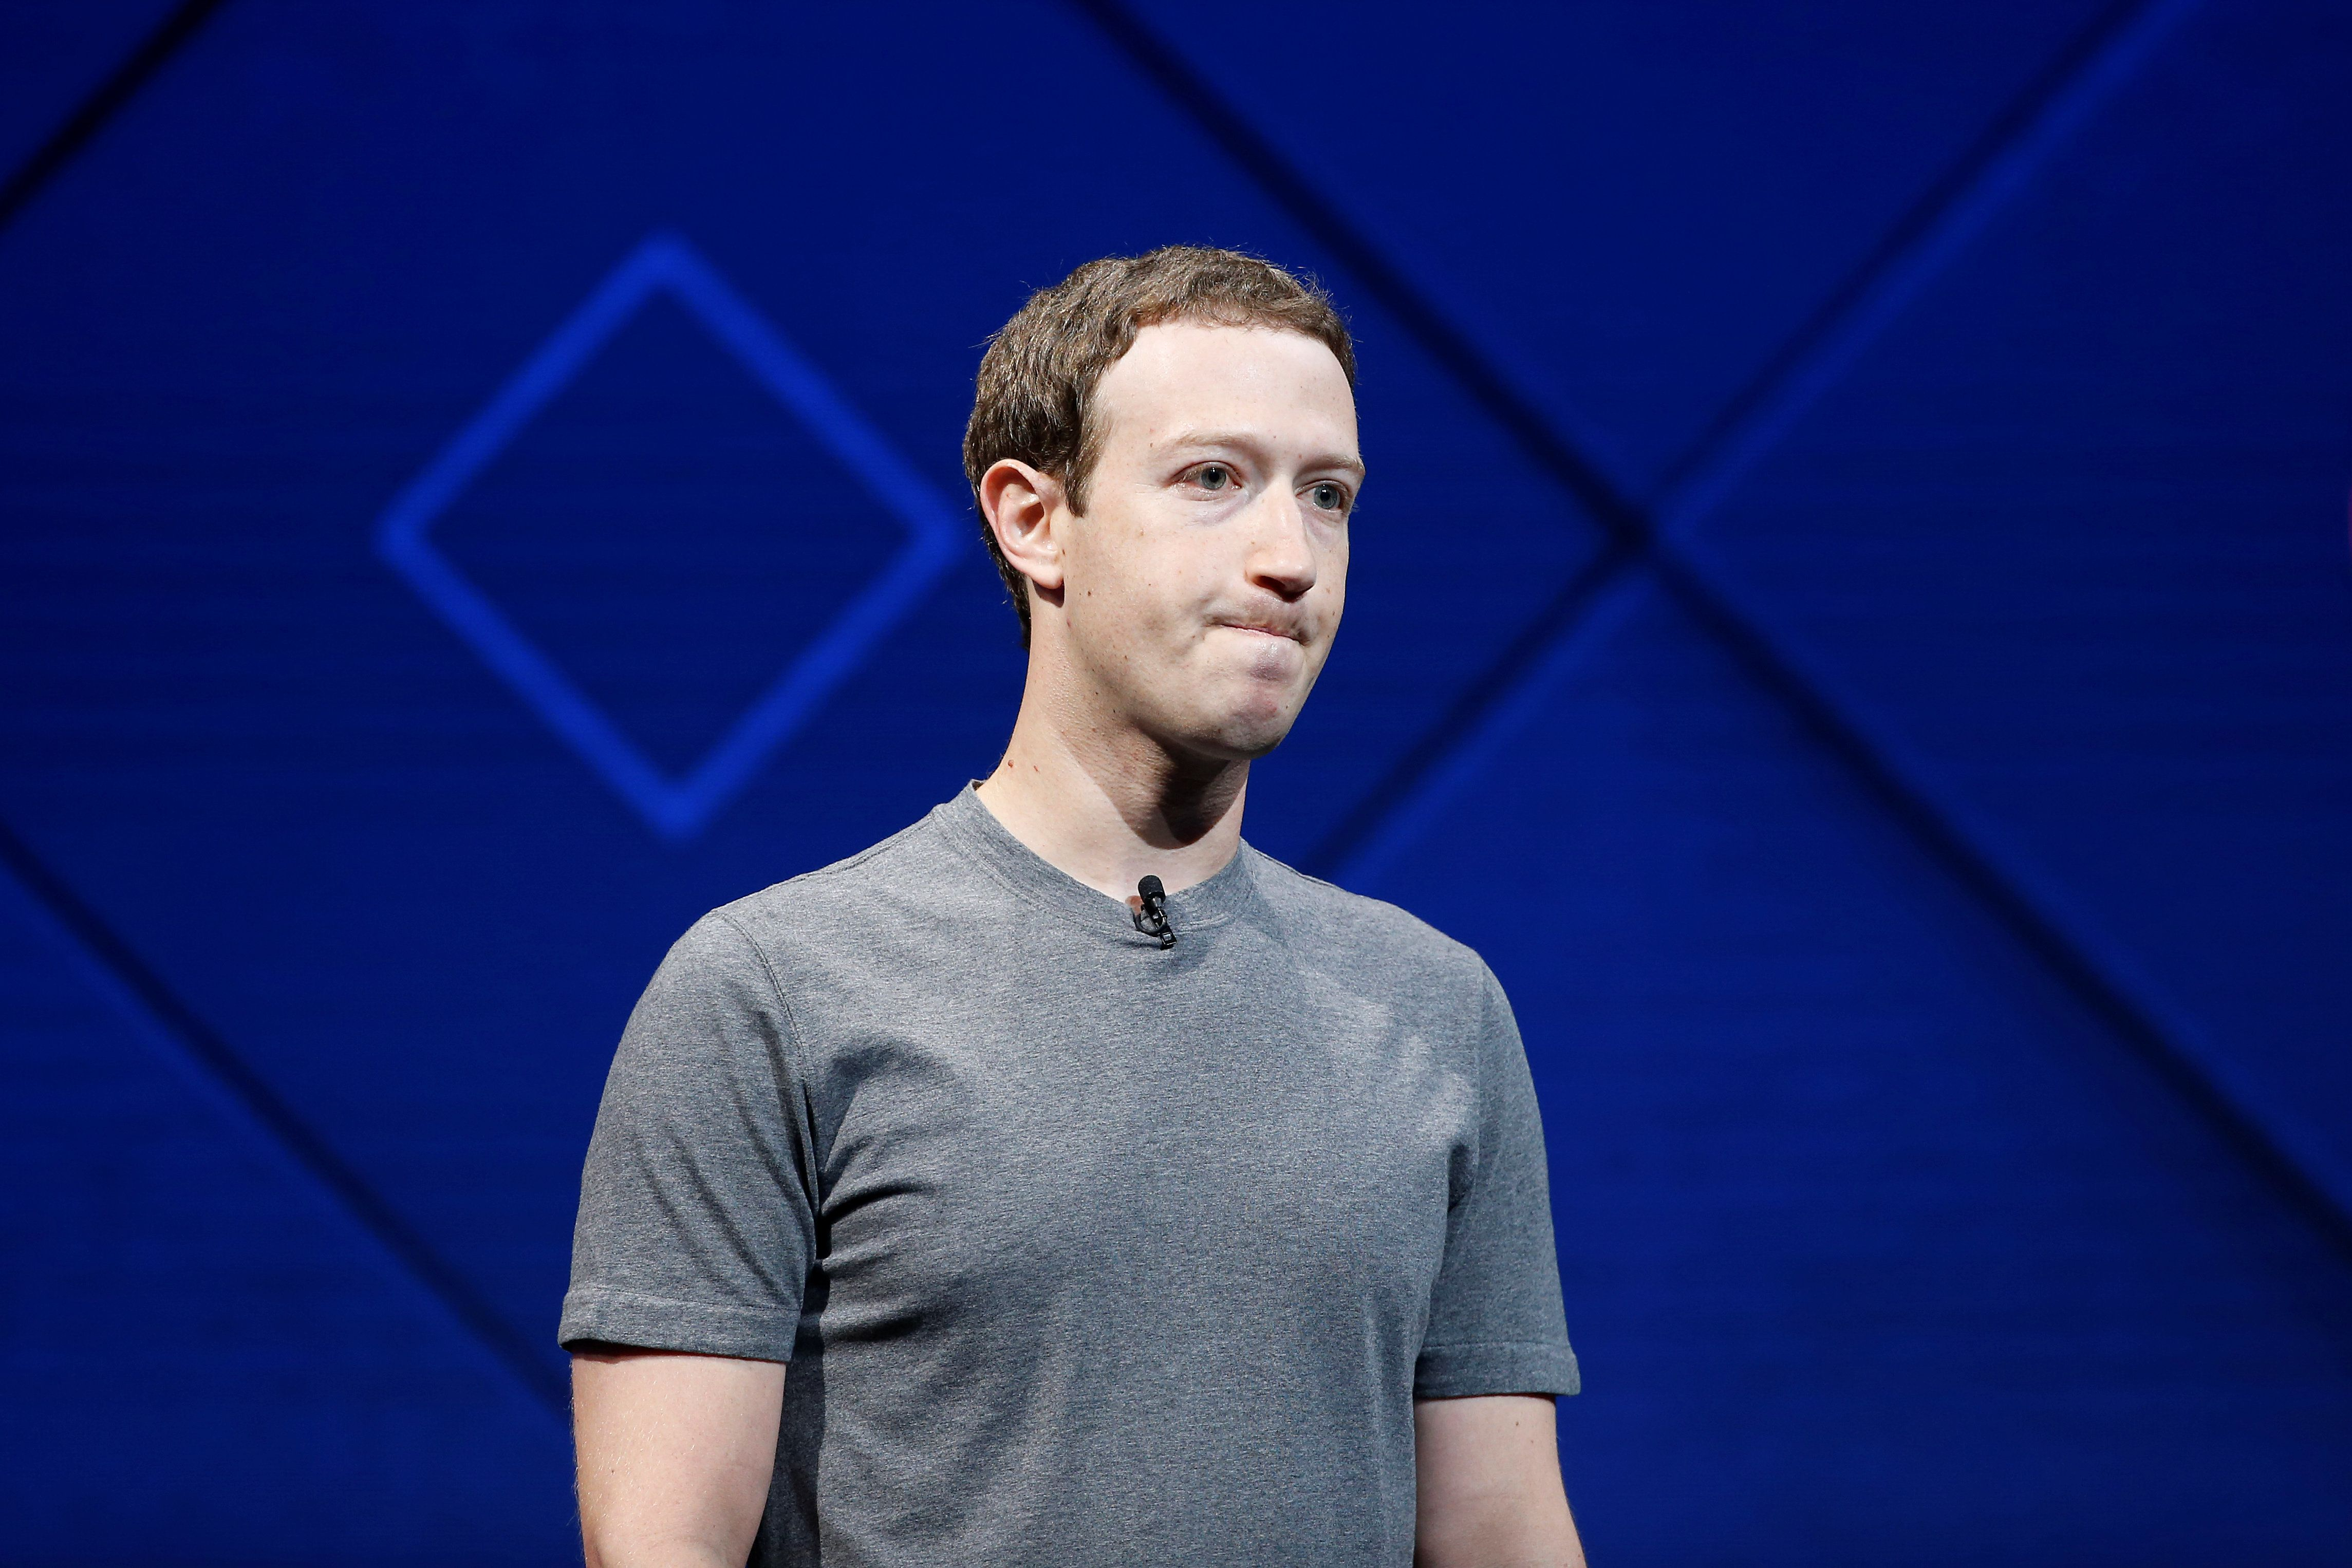 Facebook's Fear Machine: How The Social Network Enables Racist